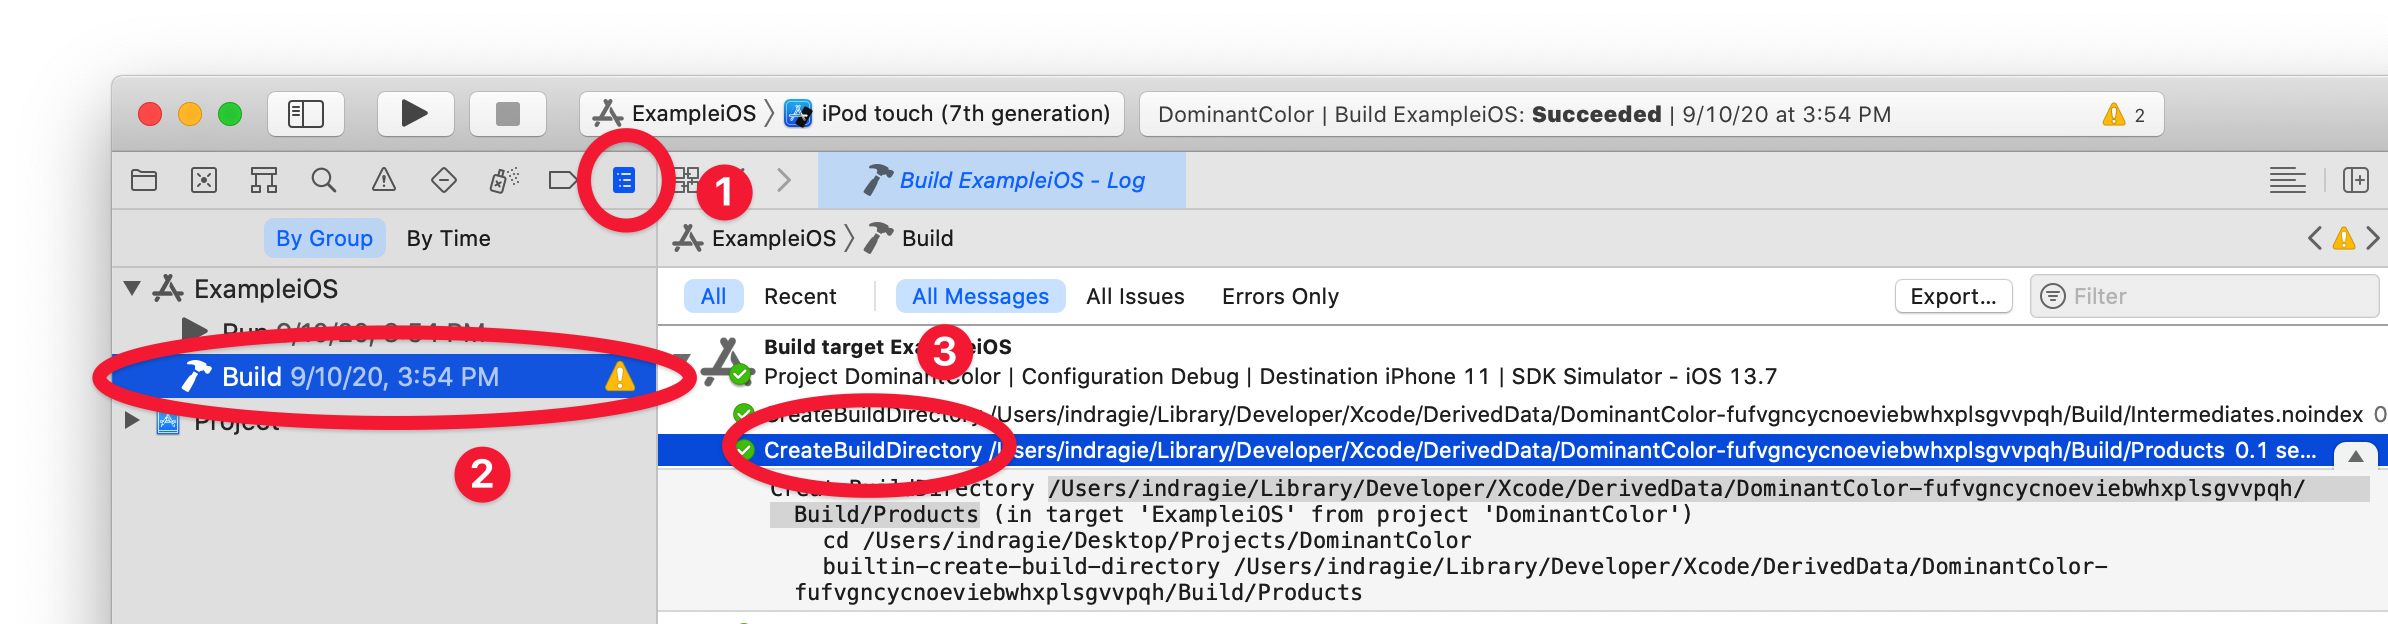 Finding the CreateBuildDirectory action in the Xcode Report navigator